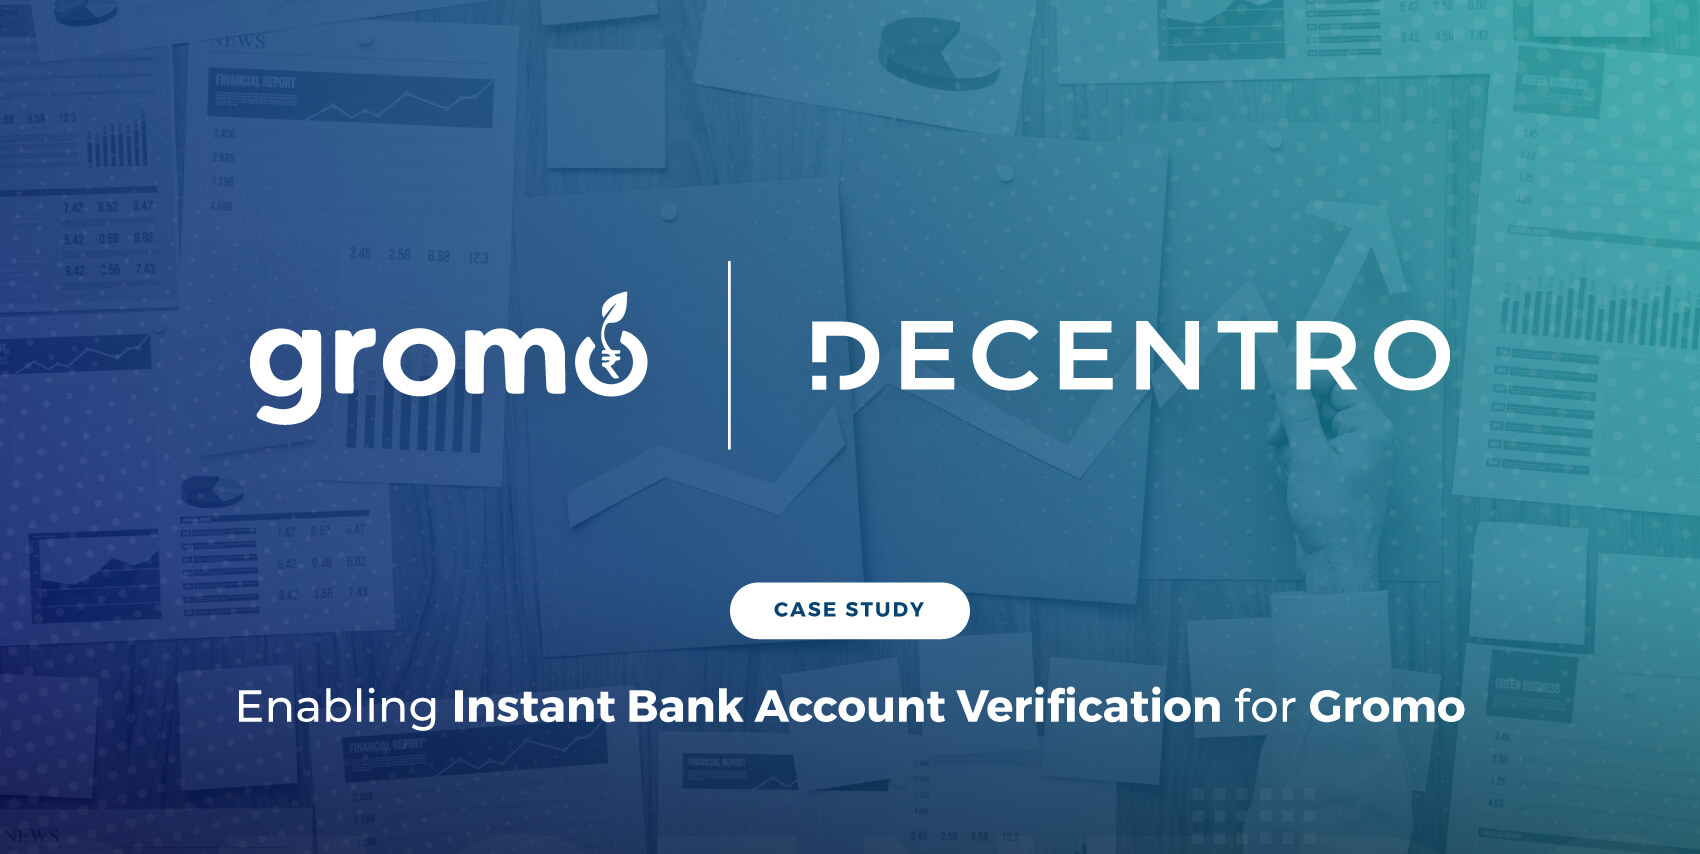 Enabling Instant Bank Account Verification for Gromo